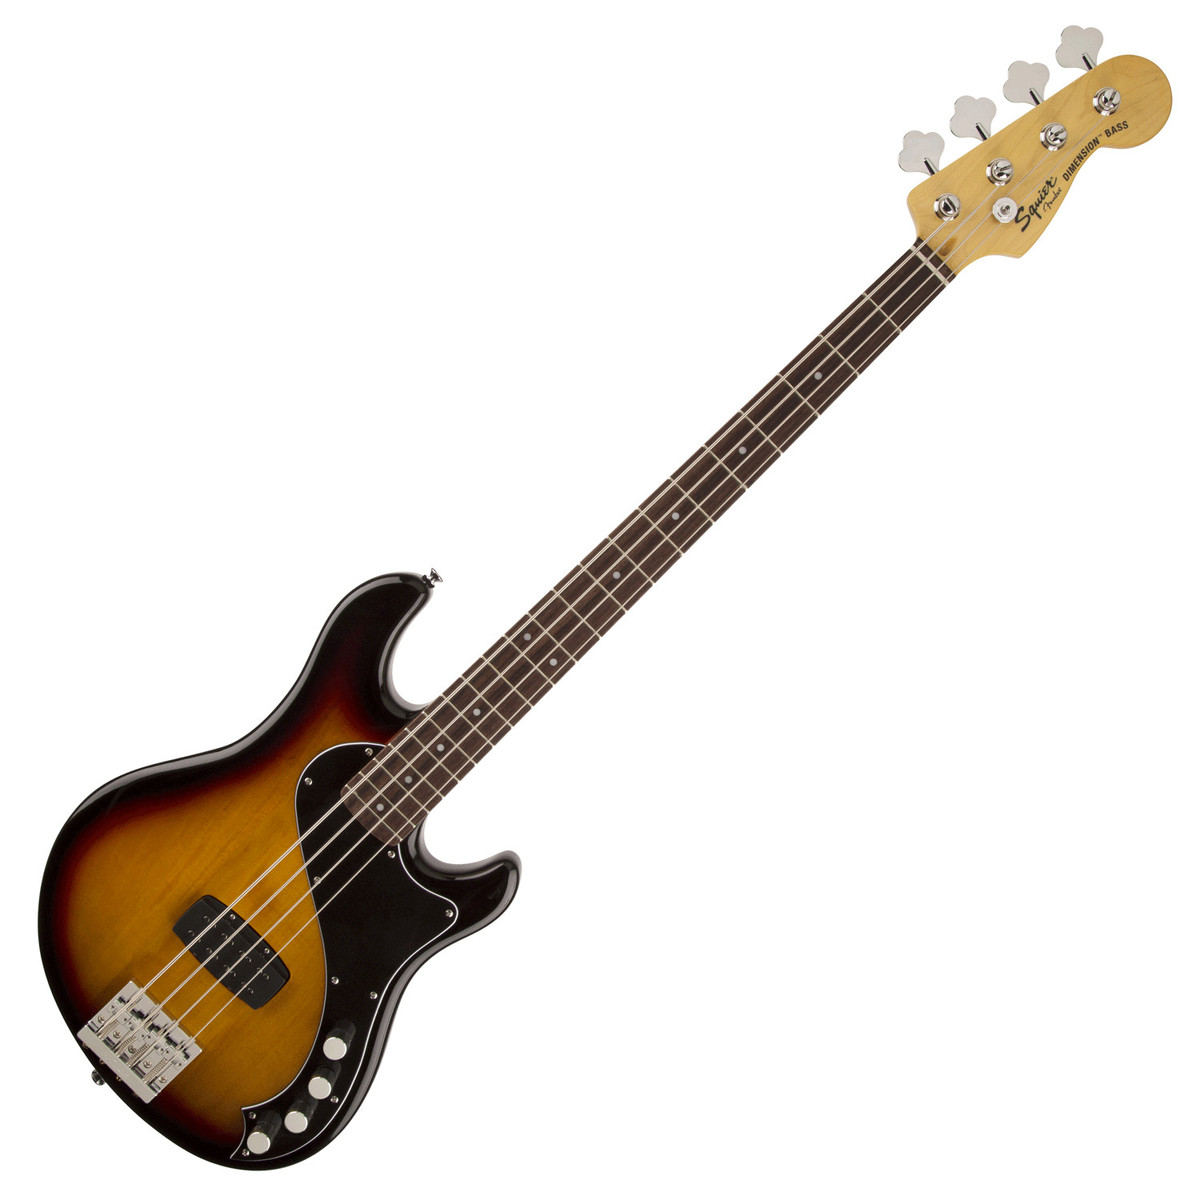 squier-deluxe-dimension-bass-iv-3color-sunburst-19651.